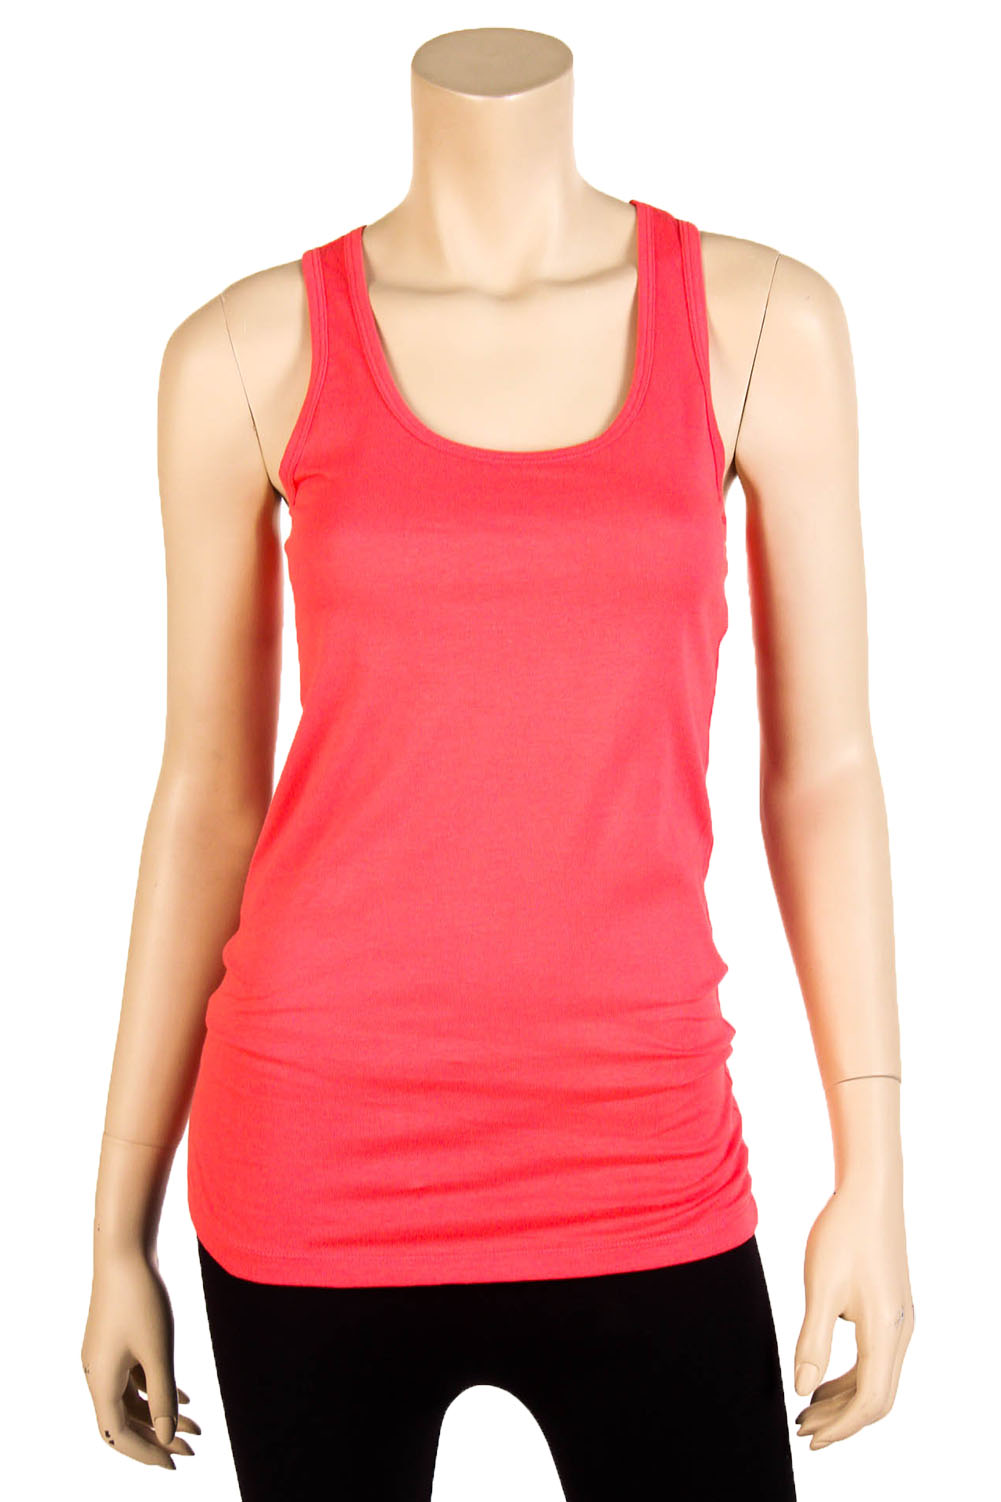 Find great deals on eBay for racerback tees. Shop with confidence.